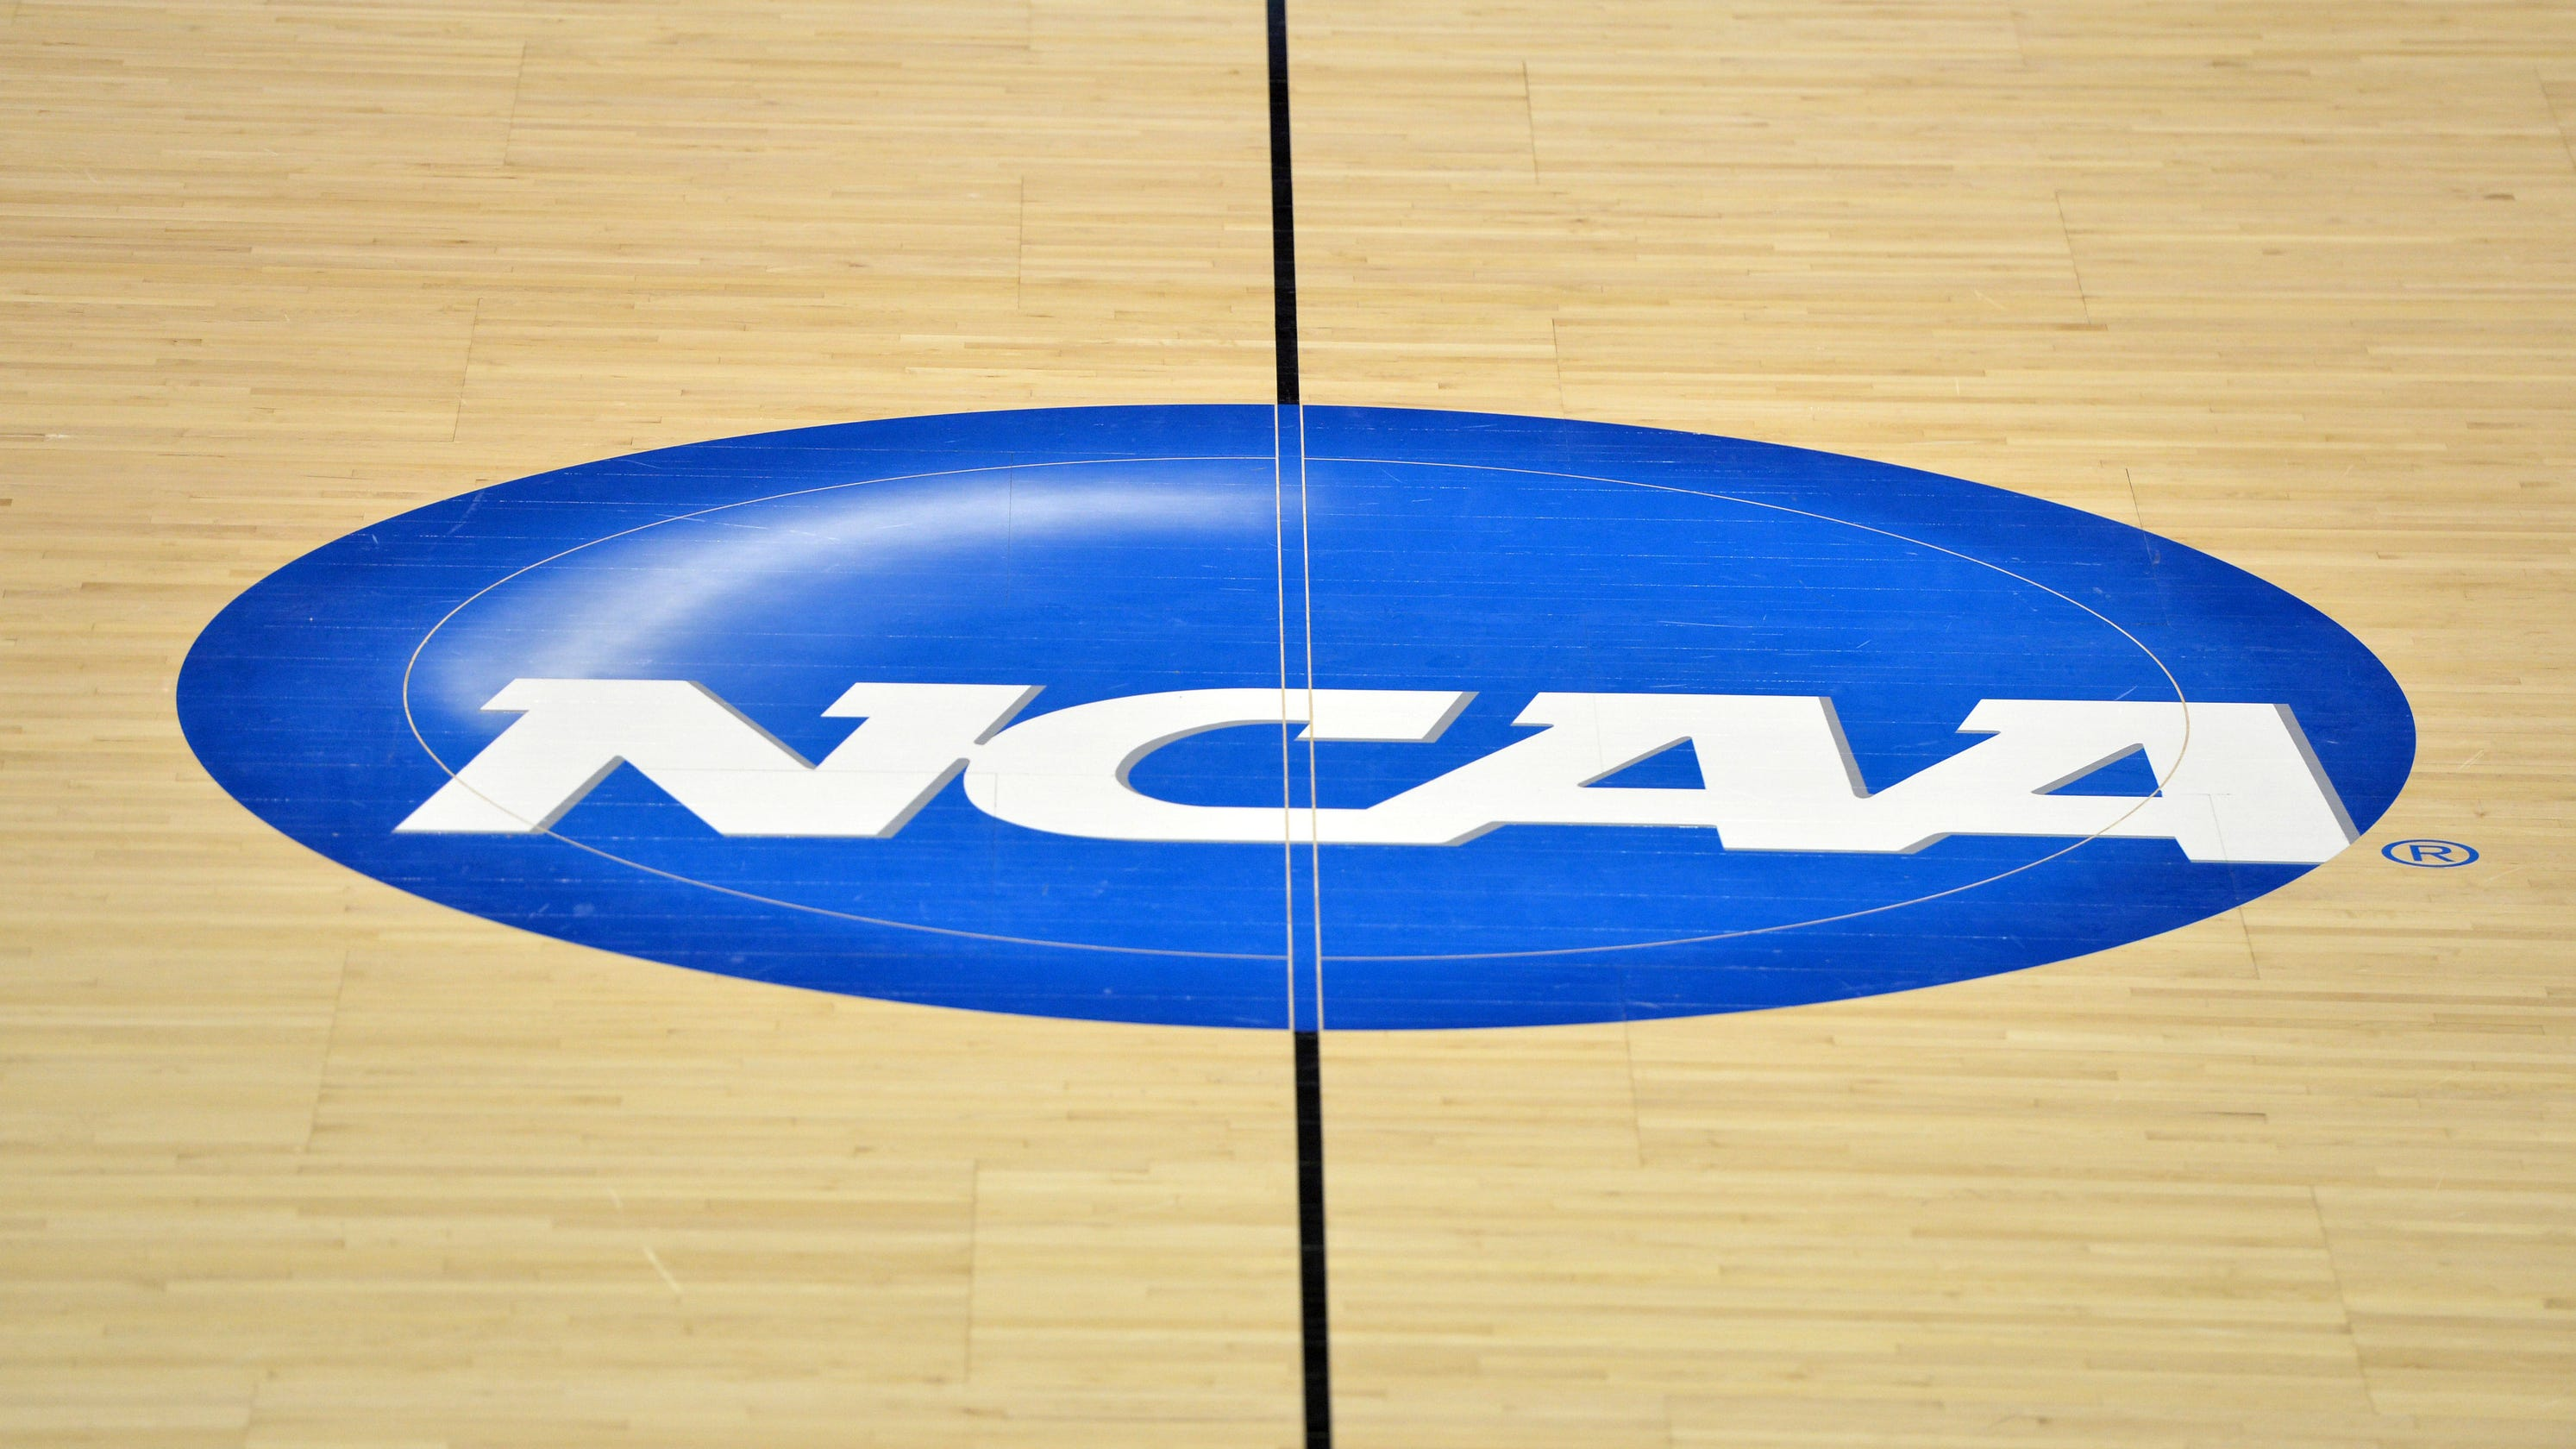 NCAA allows all athletes to wear patches supporting social justice, memorializing people